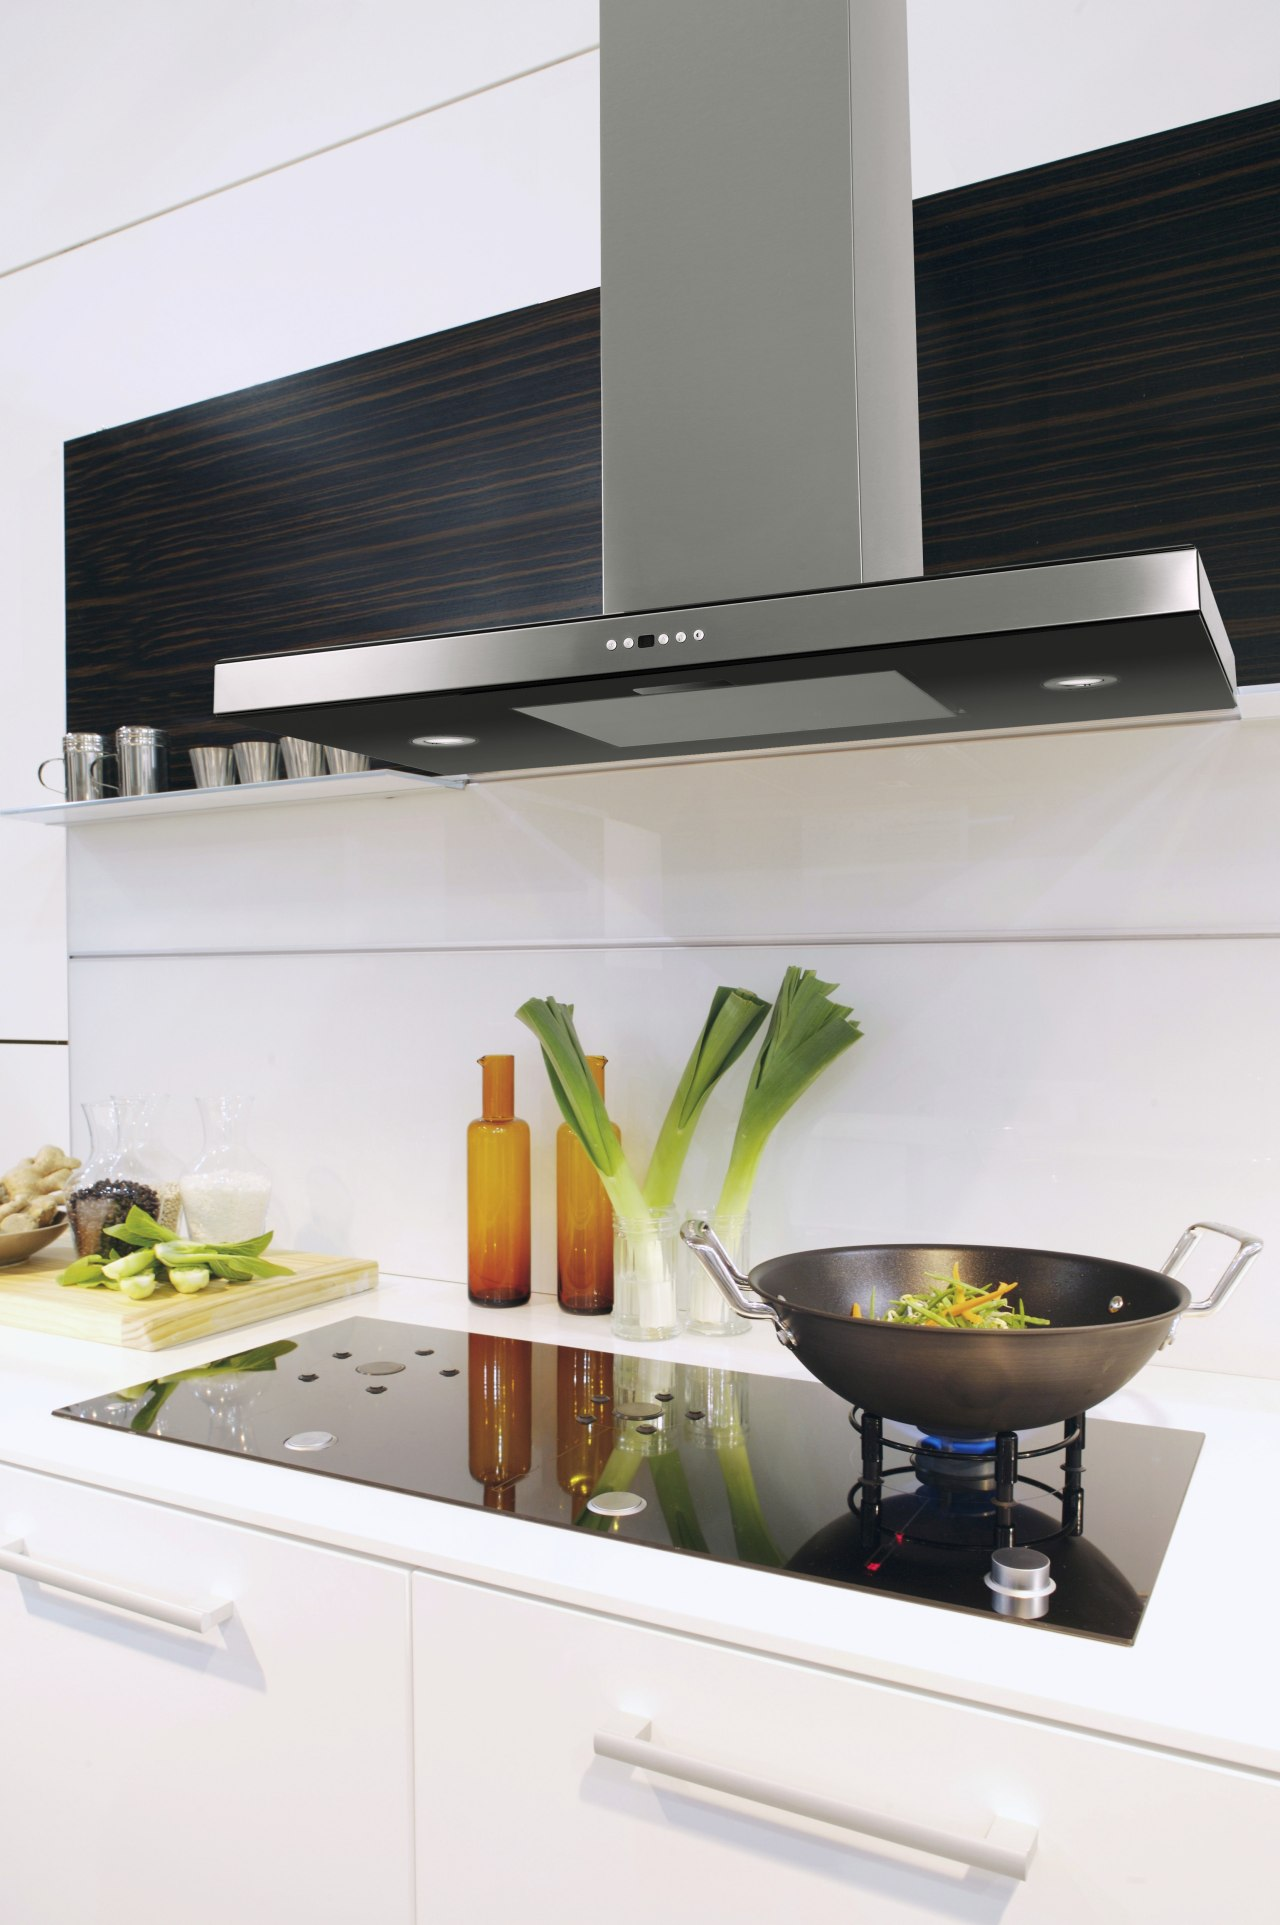 Designed to complement contemporary kitchen aesthetics, the Fisher countertop, home appliance, interior design, kitchen, kitchen appliance, product design, sink, tap, white